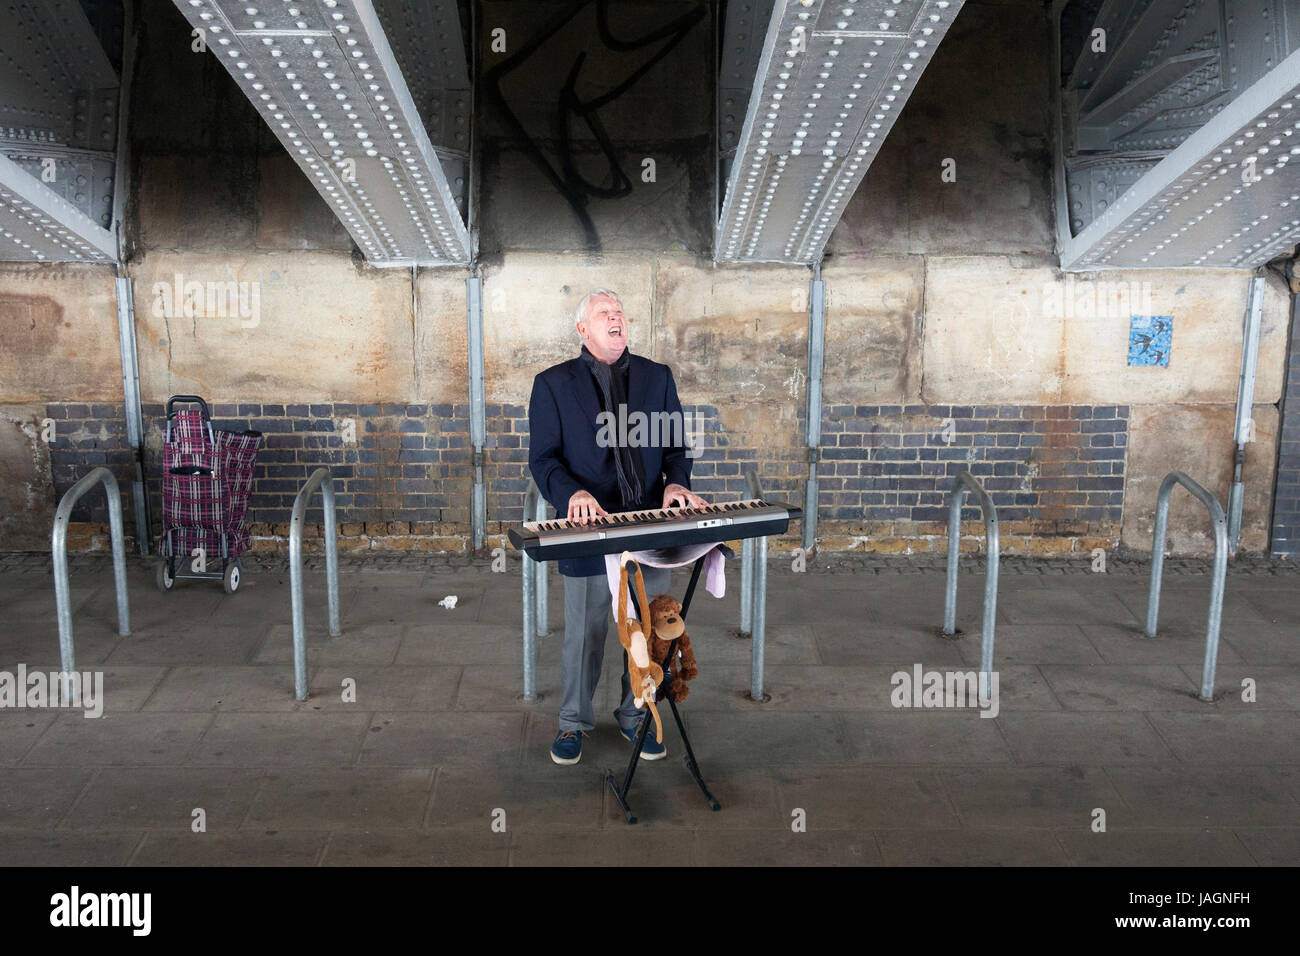 London, United Kingdom, 6 may 2017: elderly man sings at electric piano under blackfriars bridge in london - Stock Image